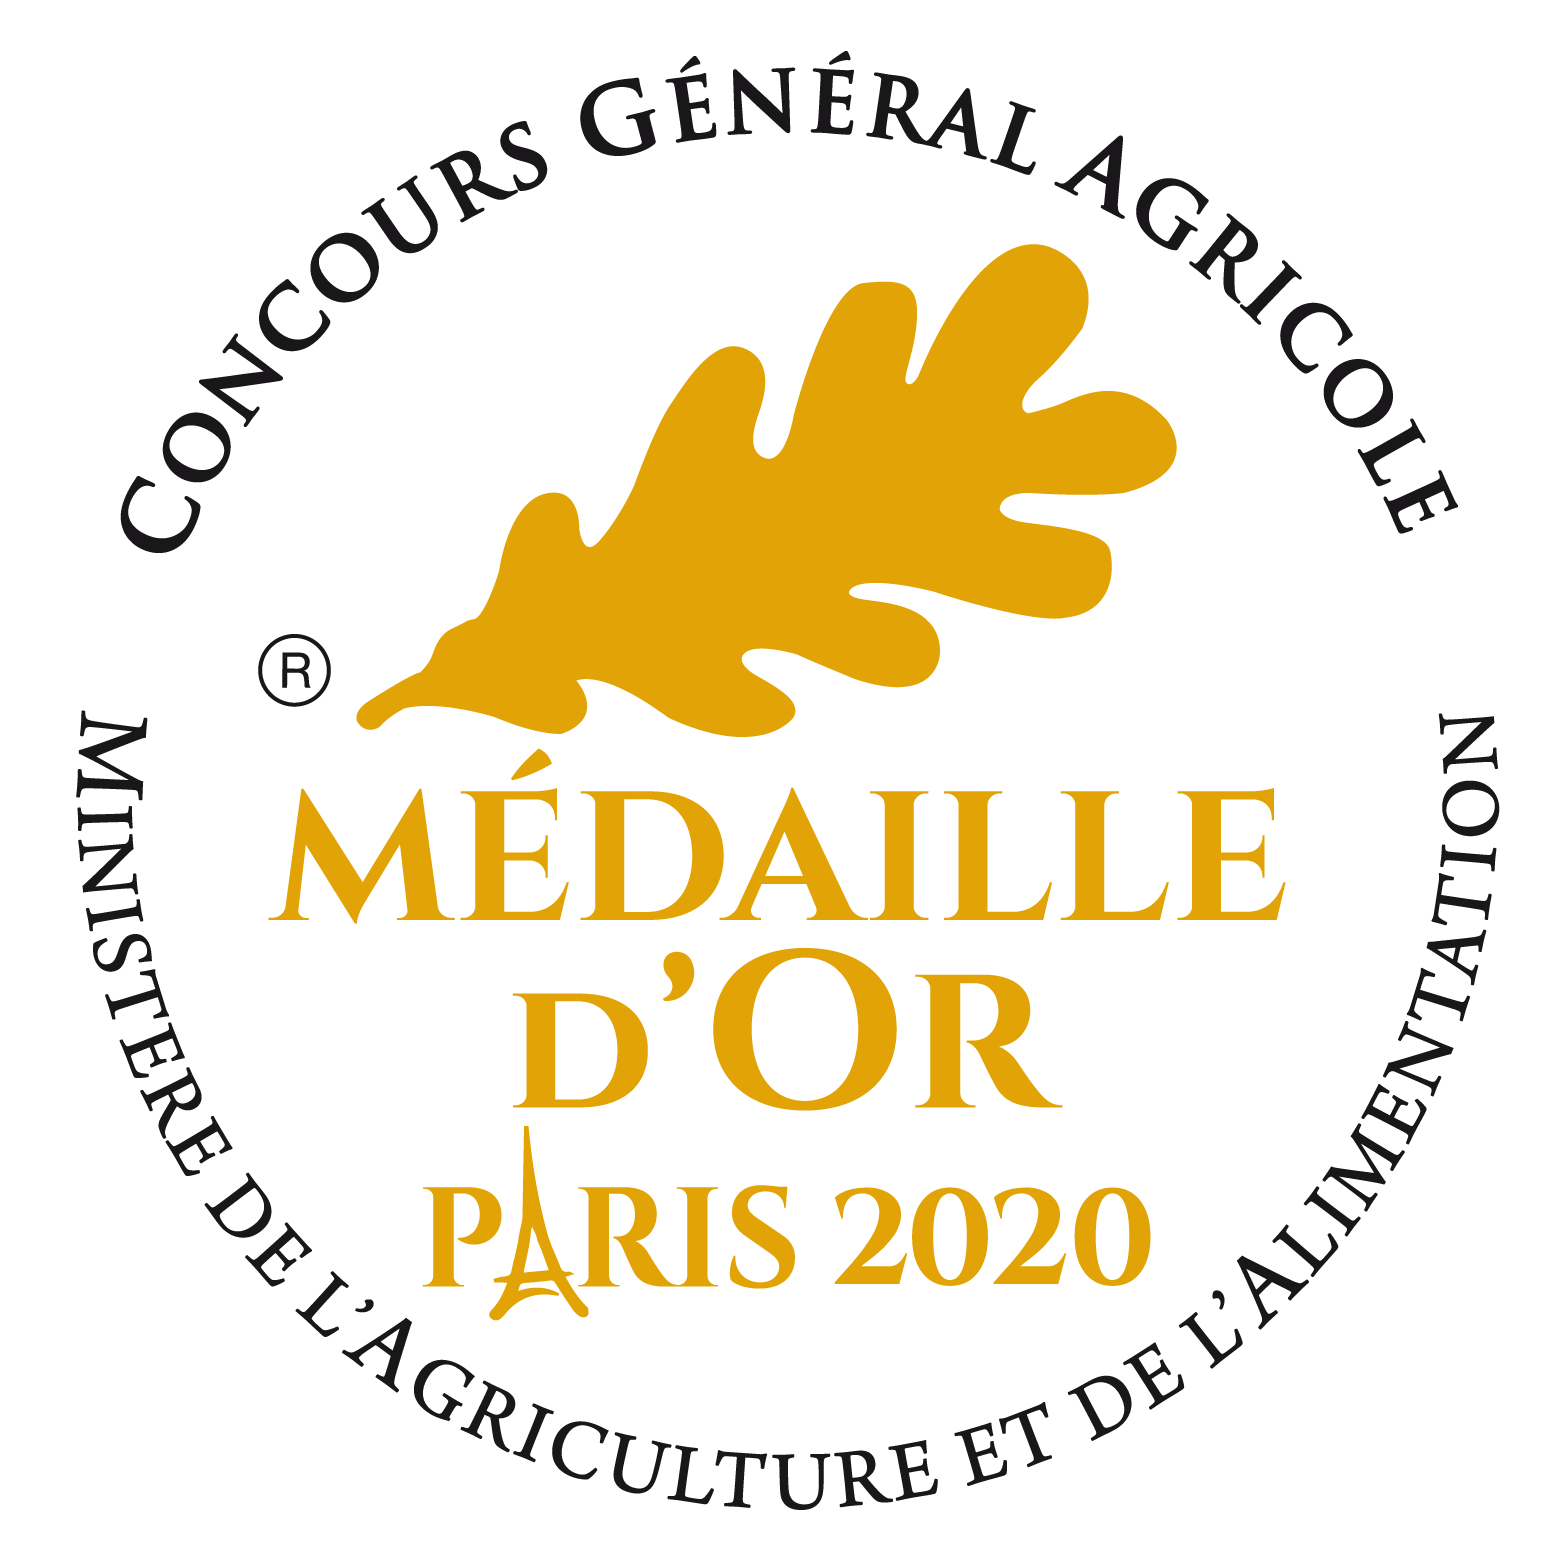 Medaille Or 2020 CGA CR BLANC 2019